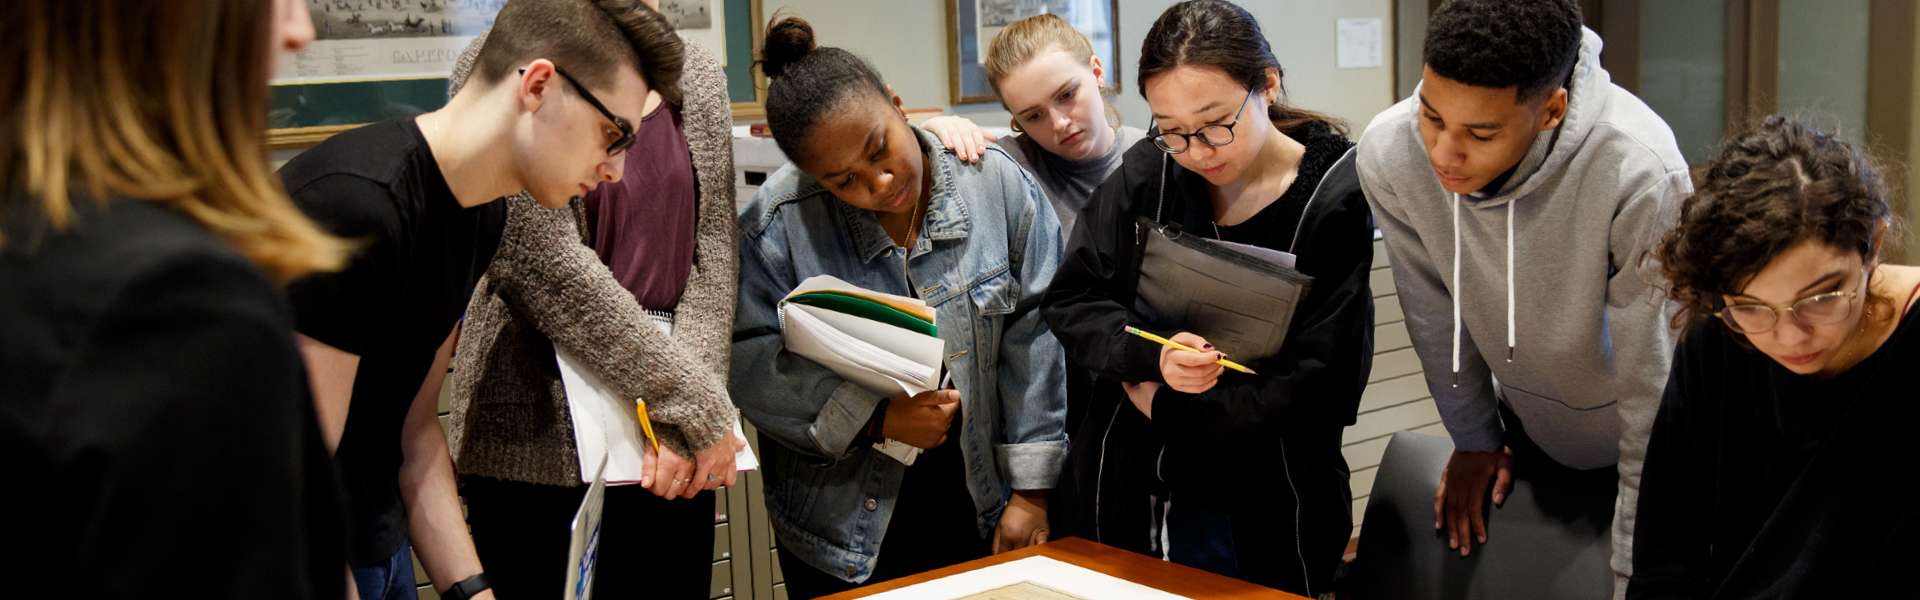 Group of students looking at a map